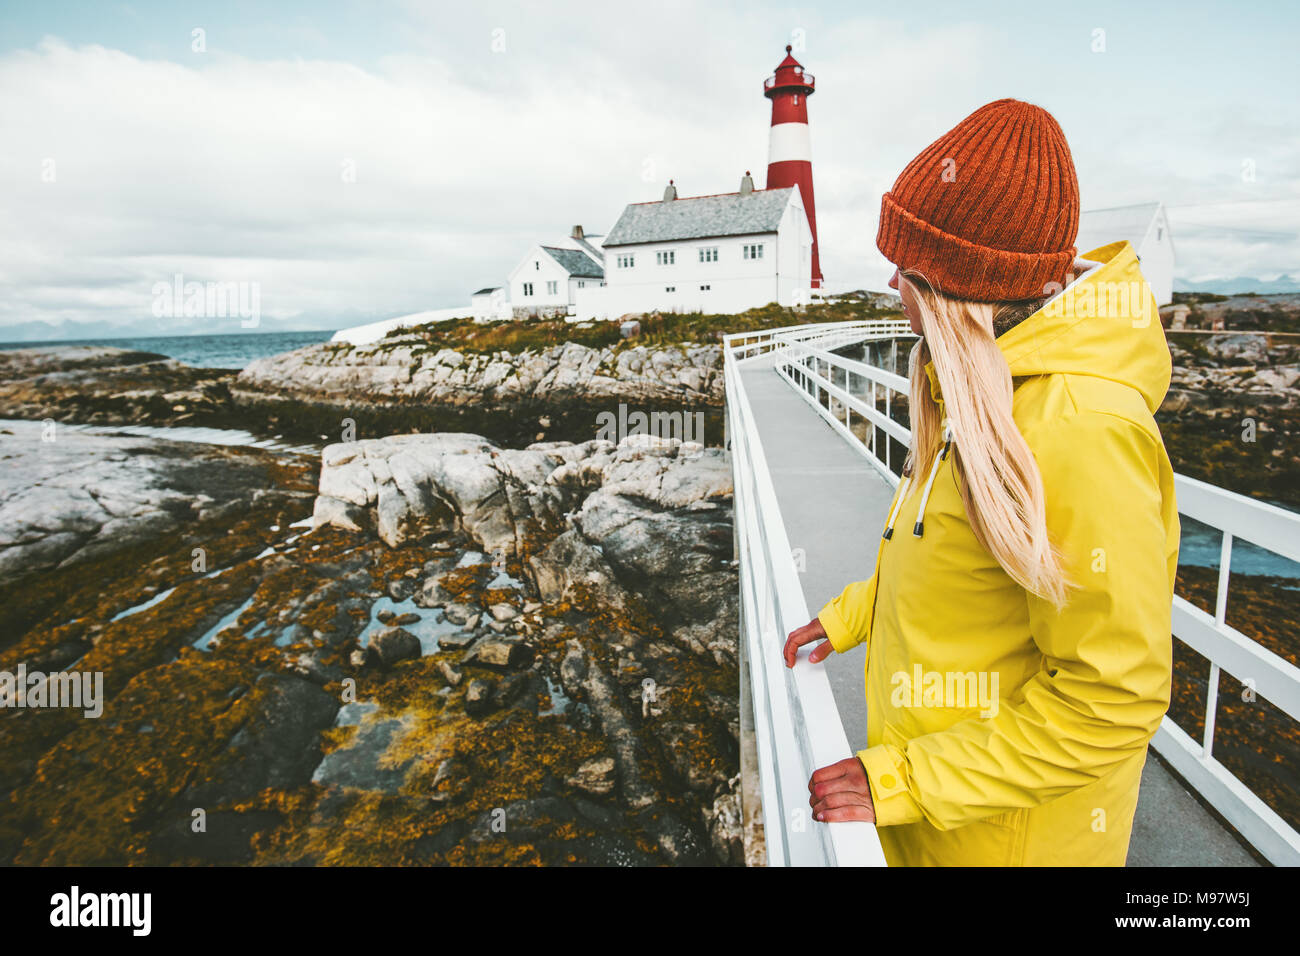 Woman sightseeing Norway lighthouse landscape Travel Lifestyle concept adventure tourist at vacations outdoor girl wearing yellow raincoat standing al - Stock Image